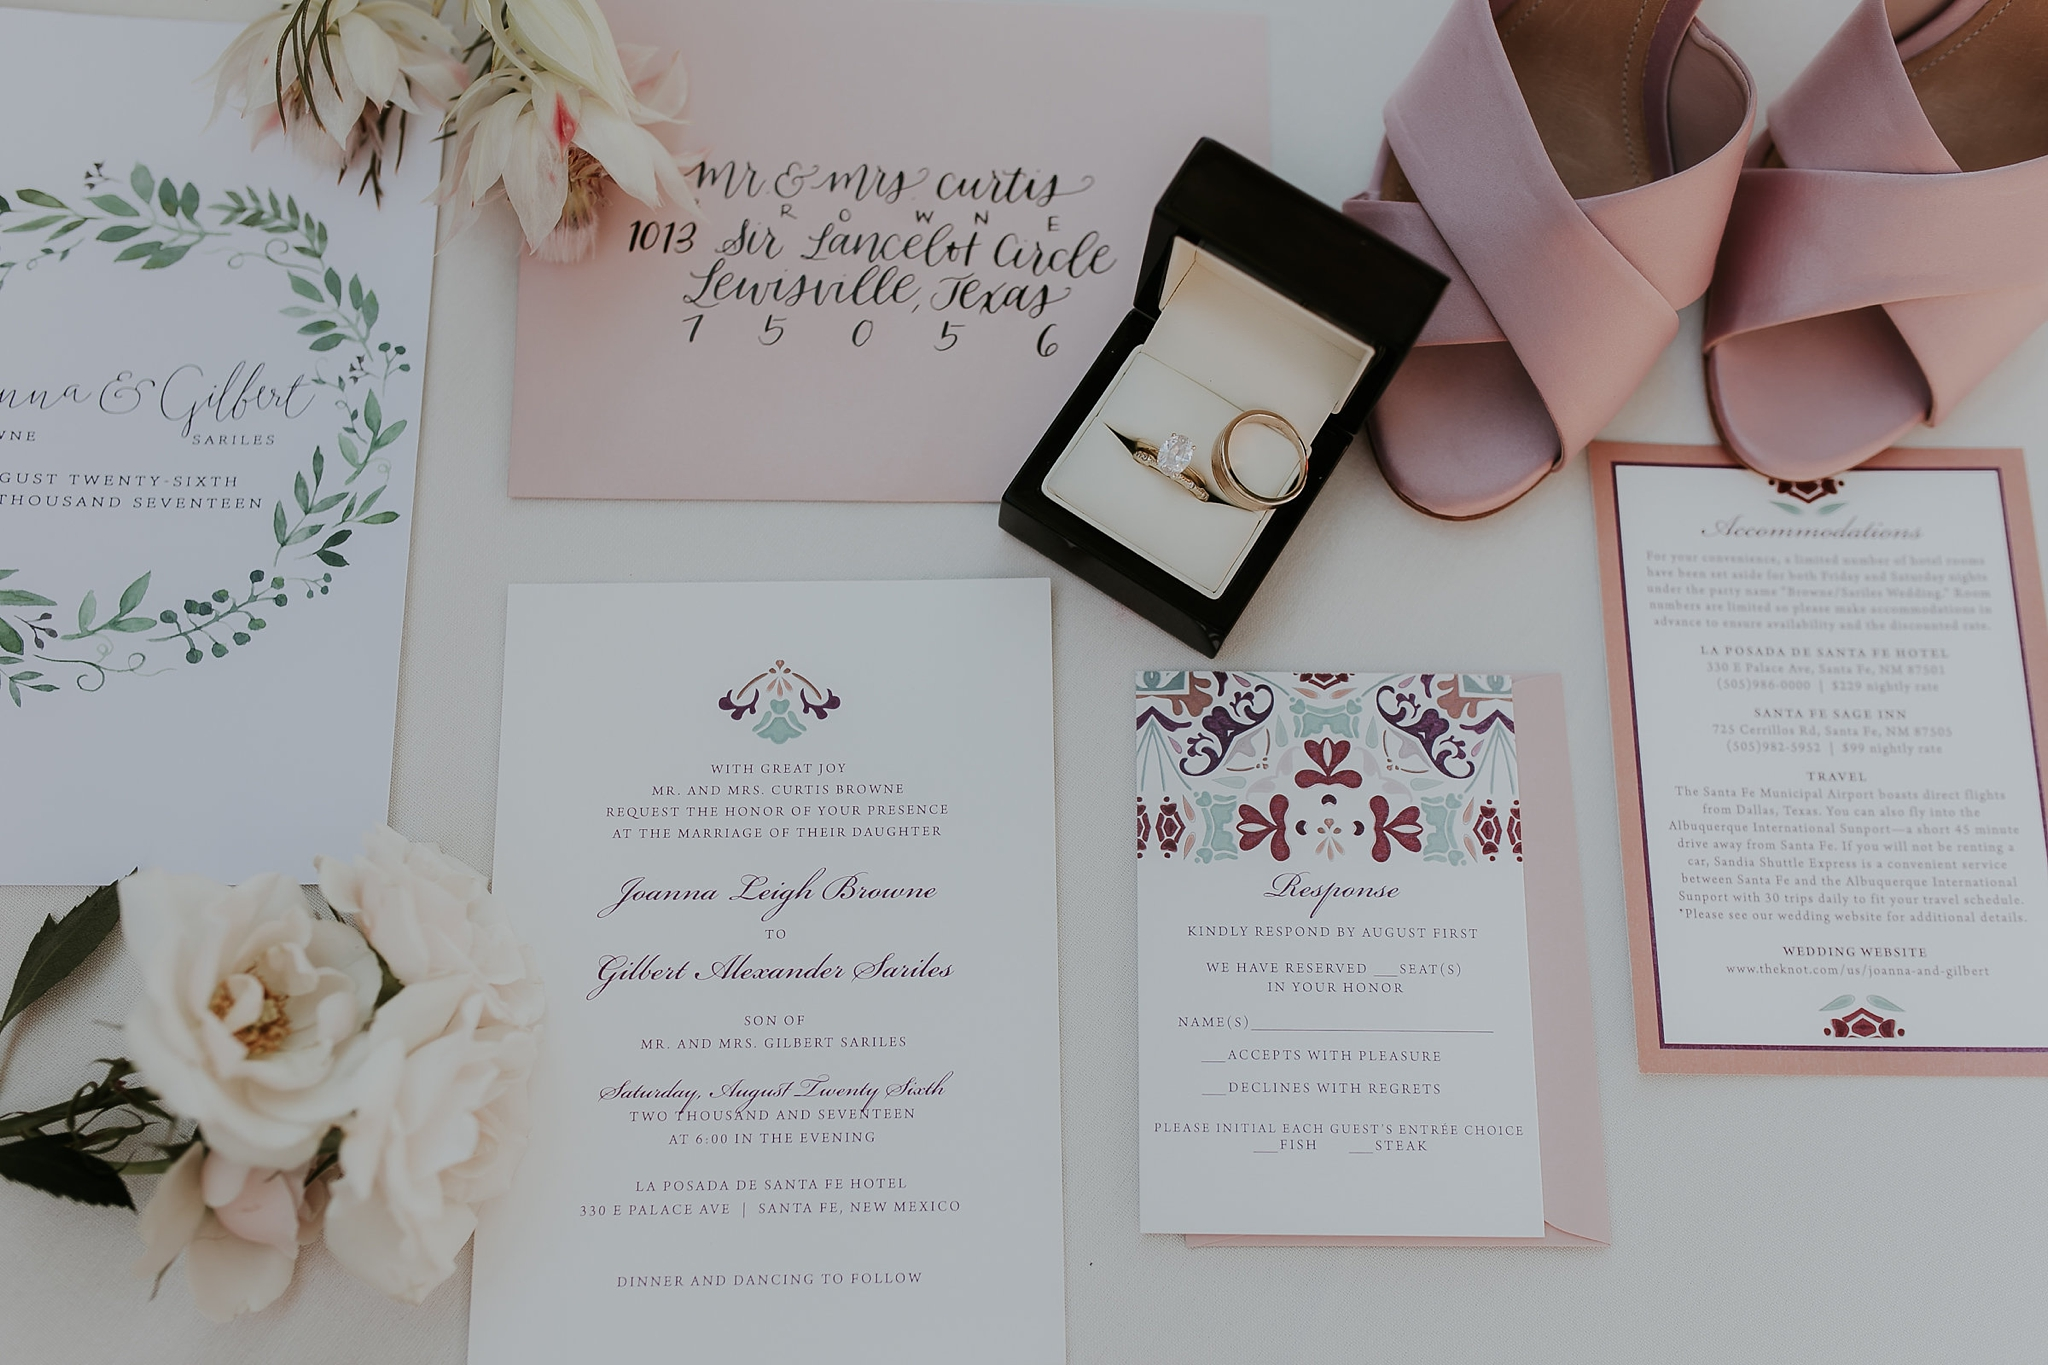 Alicia+lucia+photography+-+albuquerque+wedding+photographer+-+santa+fe+wedding+photography+-+new+mexico+wedding+photographer+-+new+mexico+wedding+-+wedding+invitations+-+invitation+suite+-+wedding+inspo_0067.jpg